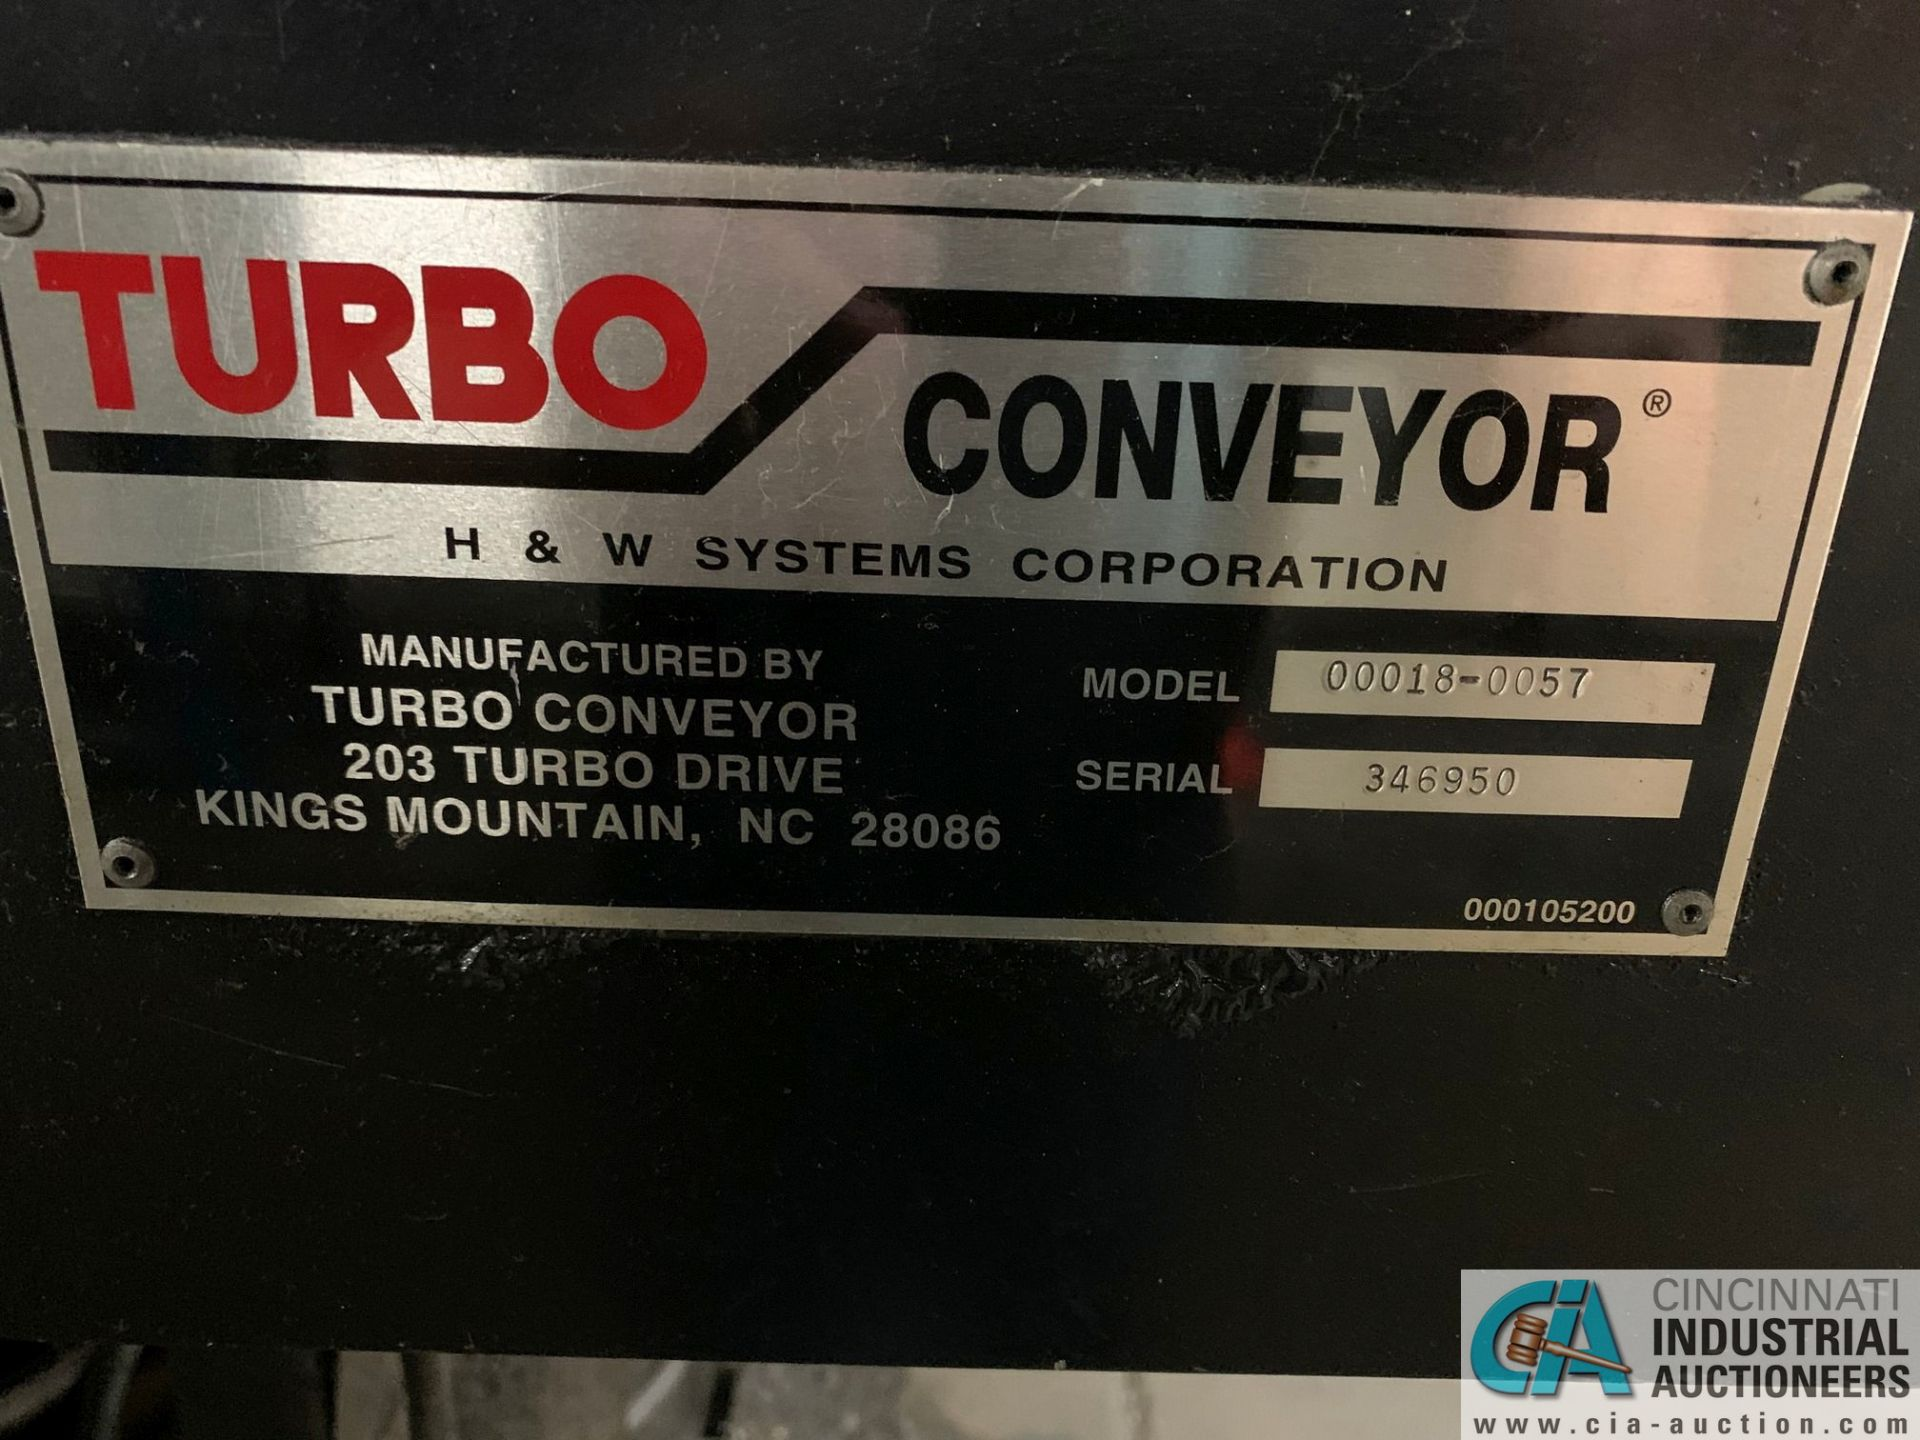 "12"" X 12' TURBO MODEL 00018-0057 CHIP CONVEYOR; S/N 346950 - Image 3 of 4"